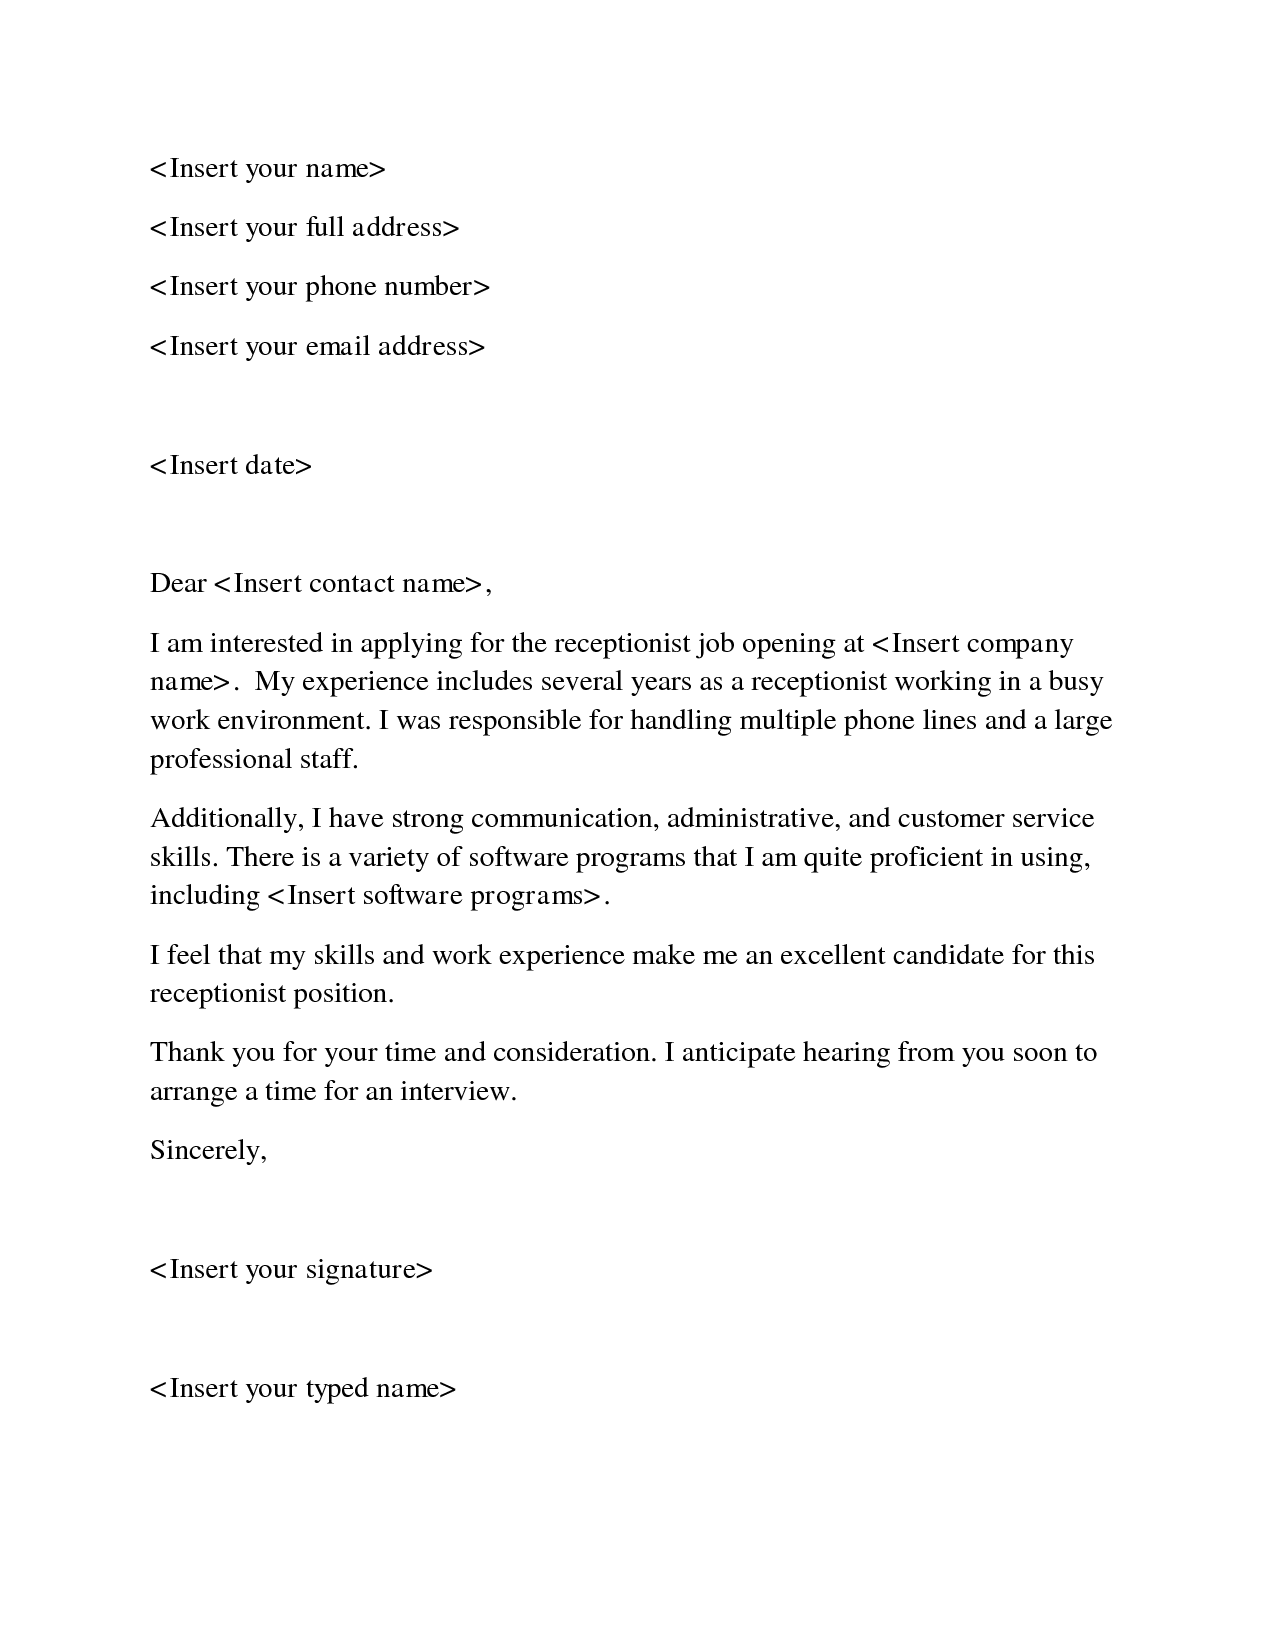 Cover letter for a job application sample thecheapjerseys Images